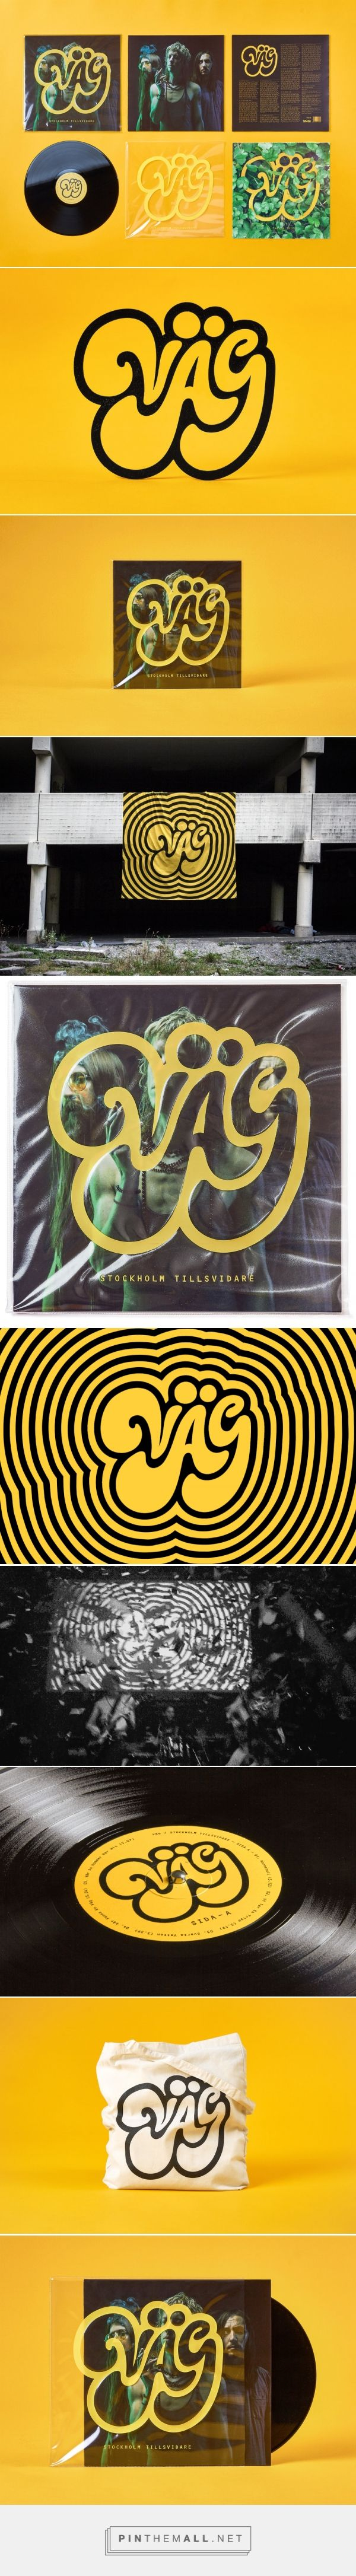 VÄG, the Swedish psychedelic rock band — The Dieline - Branding & Packaging Design